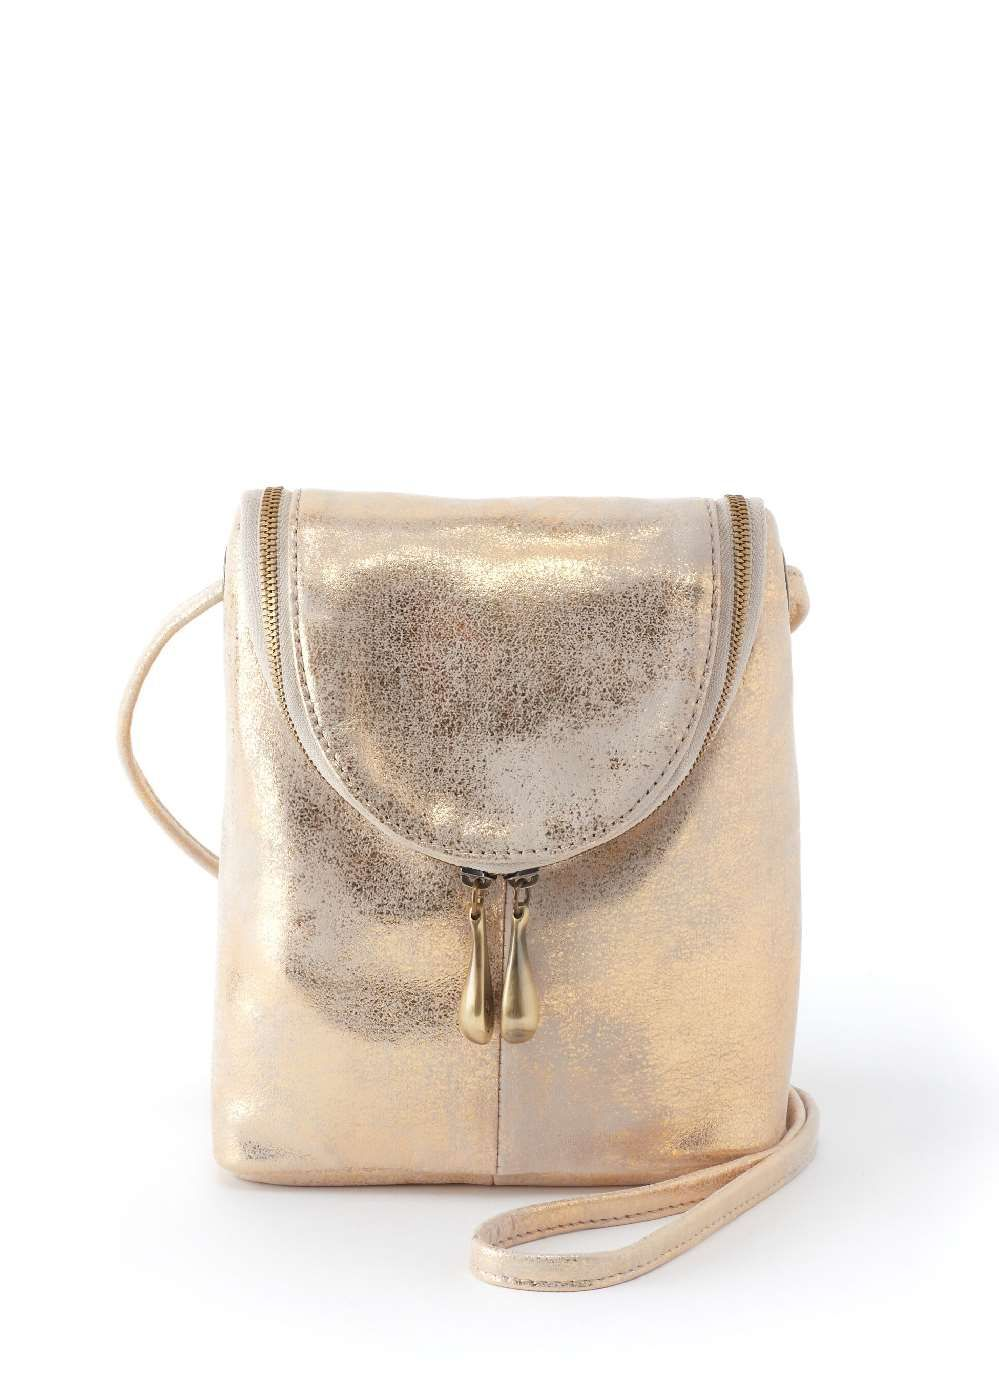 Hobo Fern Distressed Gold Crossbody